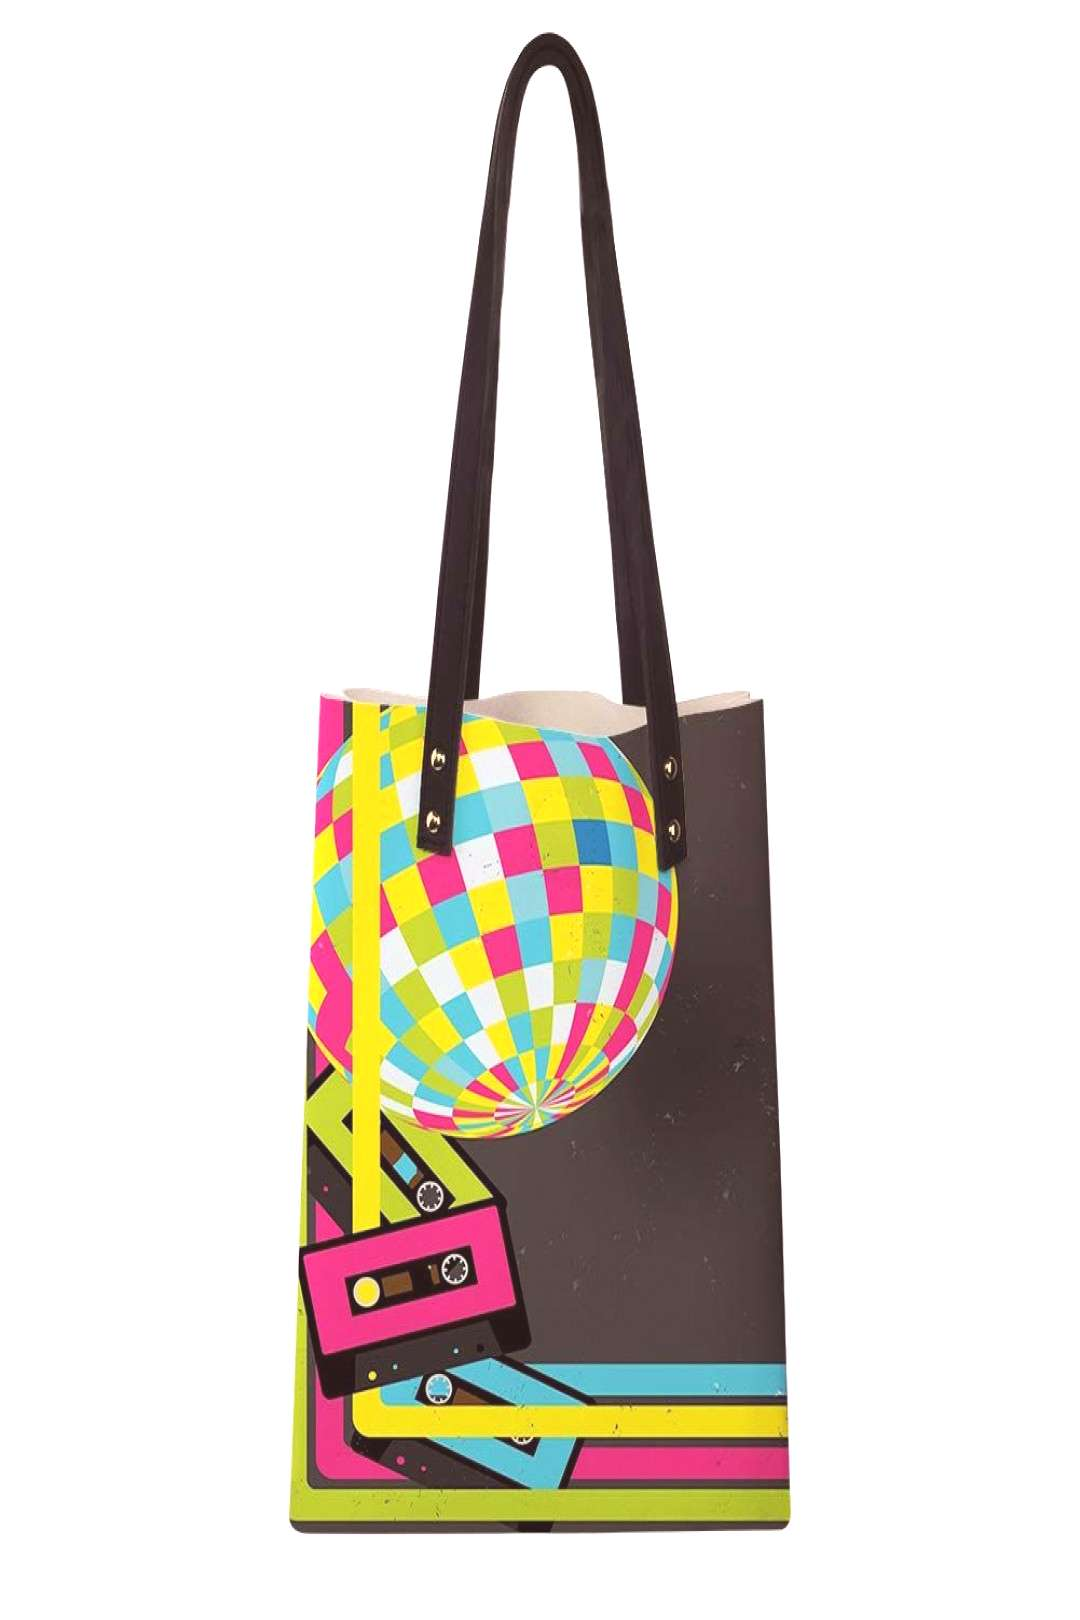 Womens Soft PU leather Tote Shoulder Bag,Retro Party Theme Disco Ball 80s Style Audio Cassette Tap